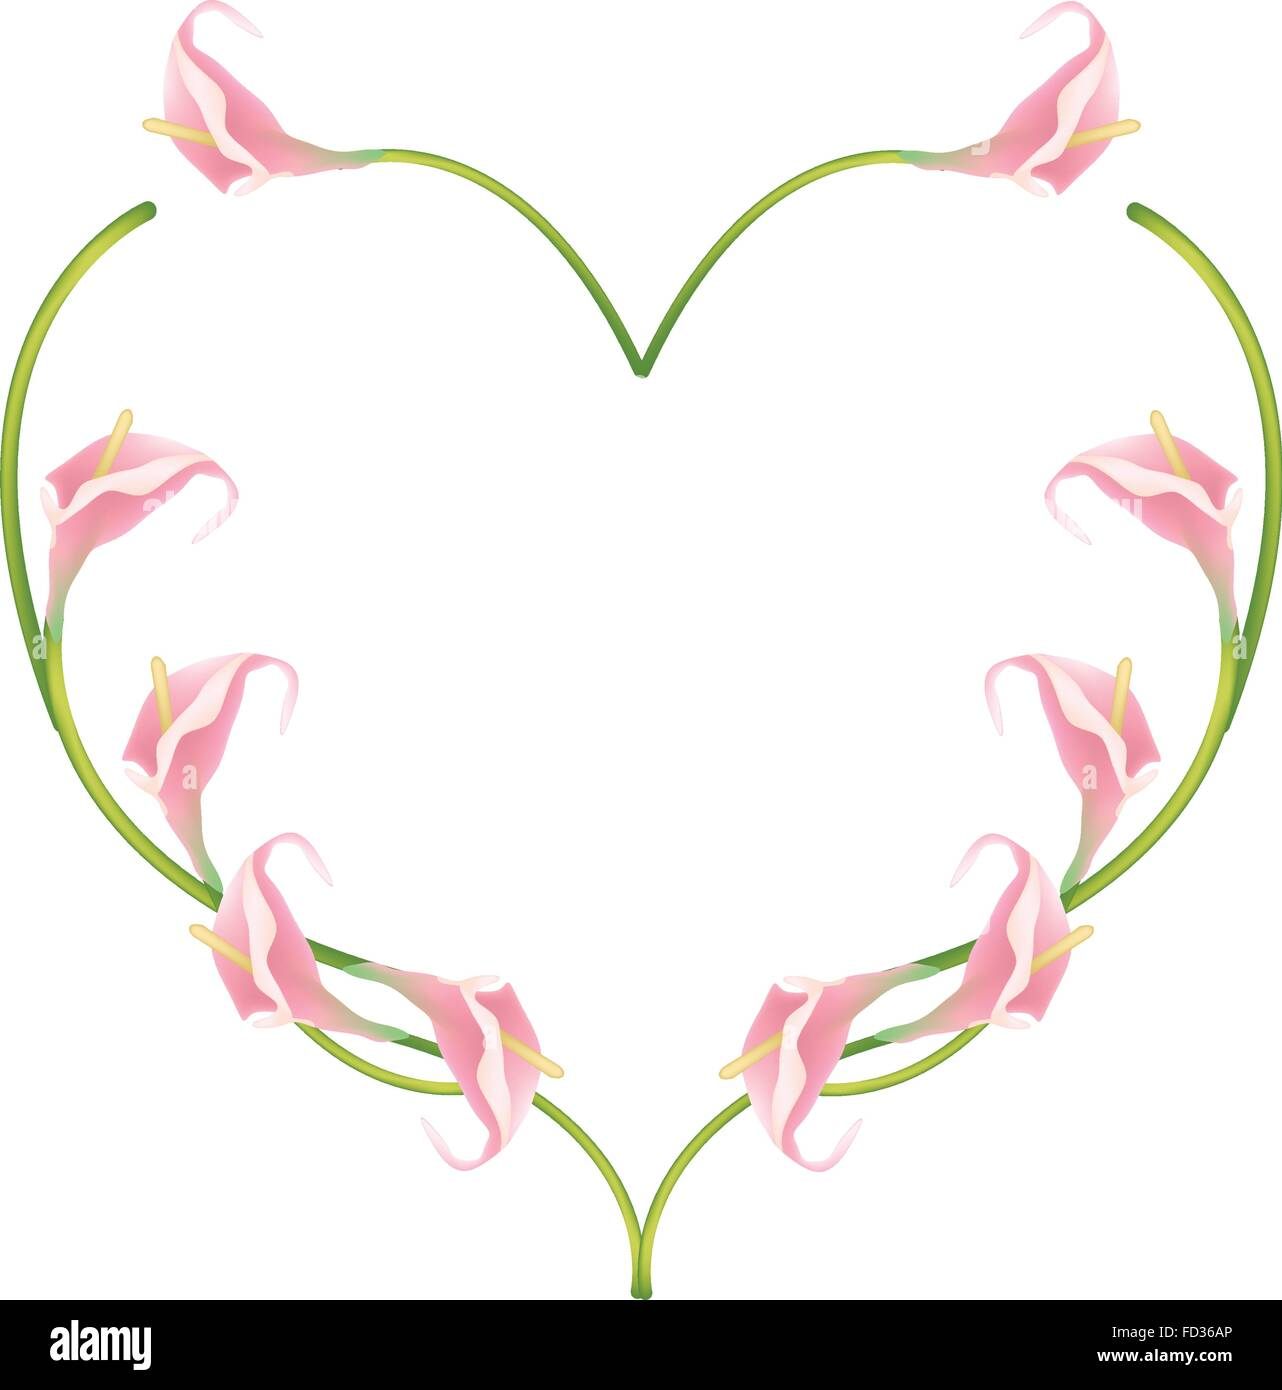 Love Concept, Illustration of Pink Anthurium Flowers or Flamingo Flowers Forming in Heart Shape Isolated on White - Stock Vector